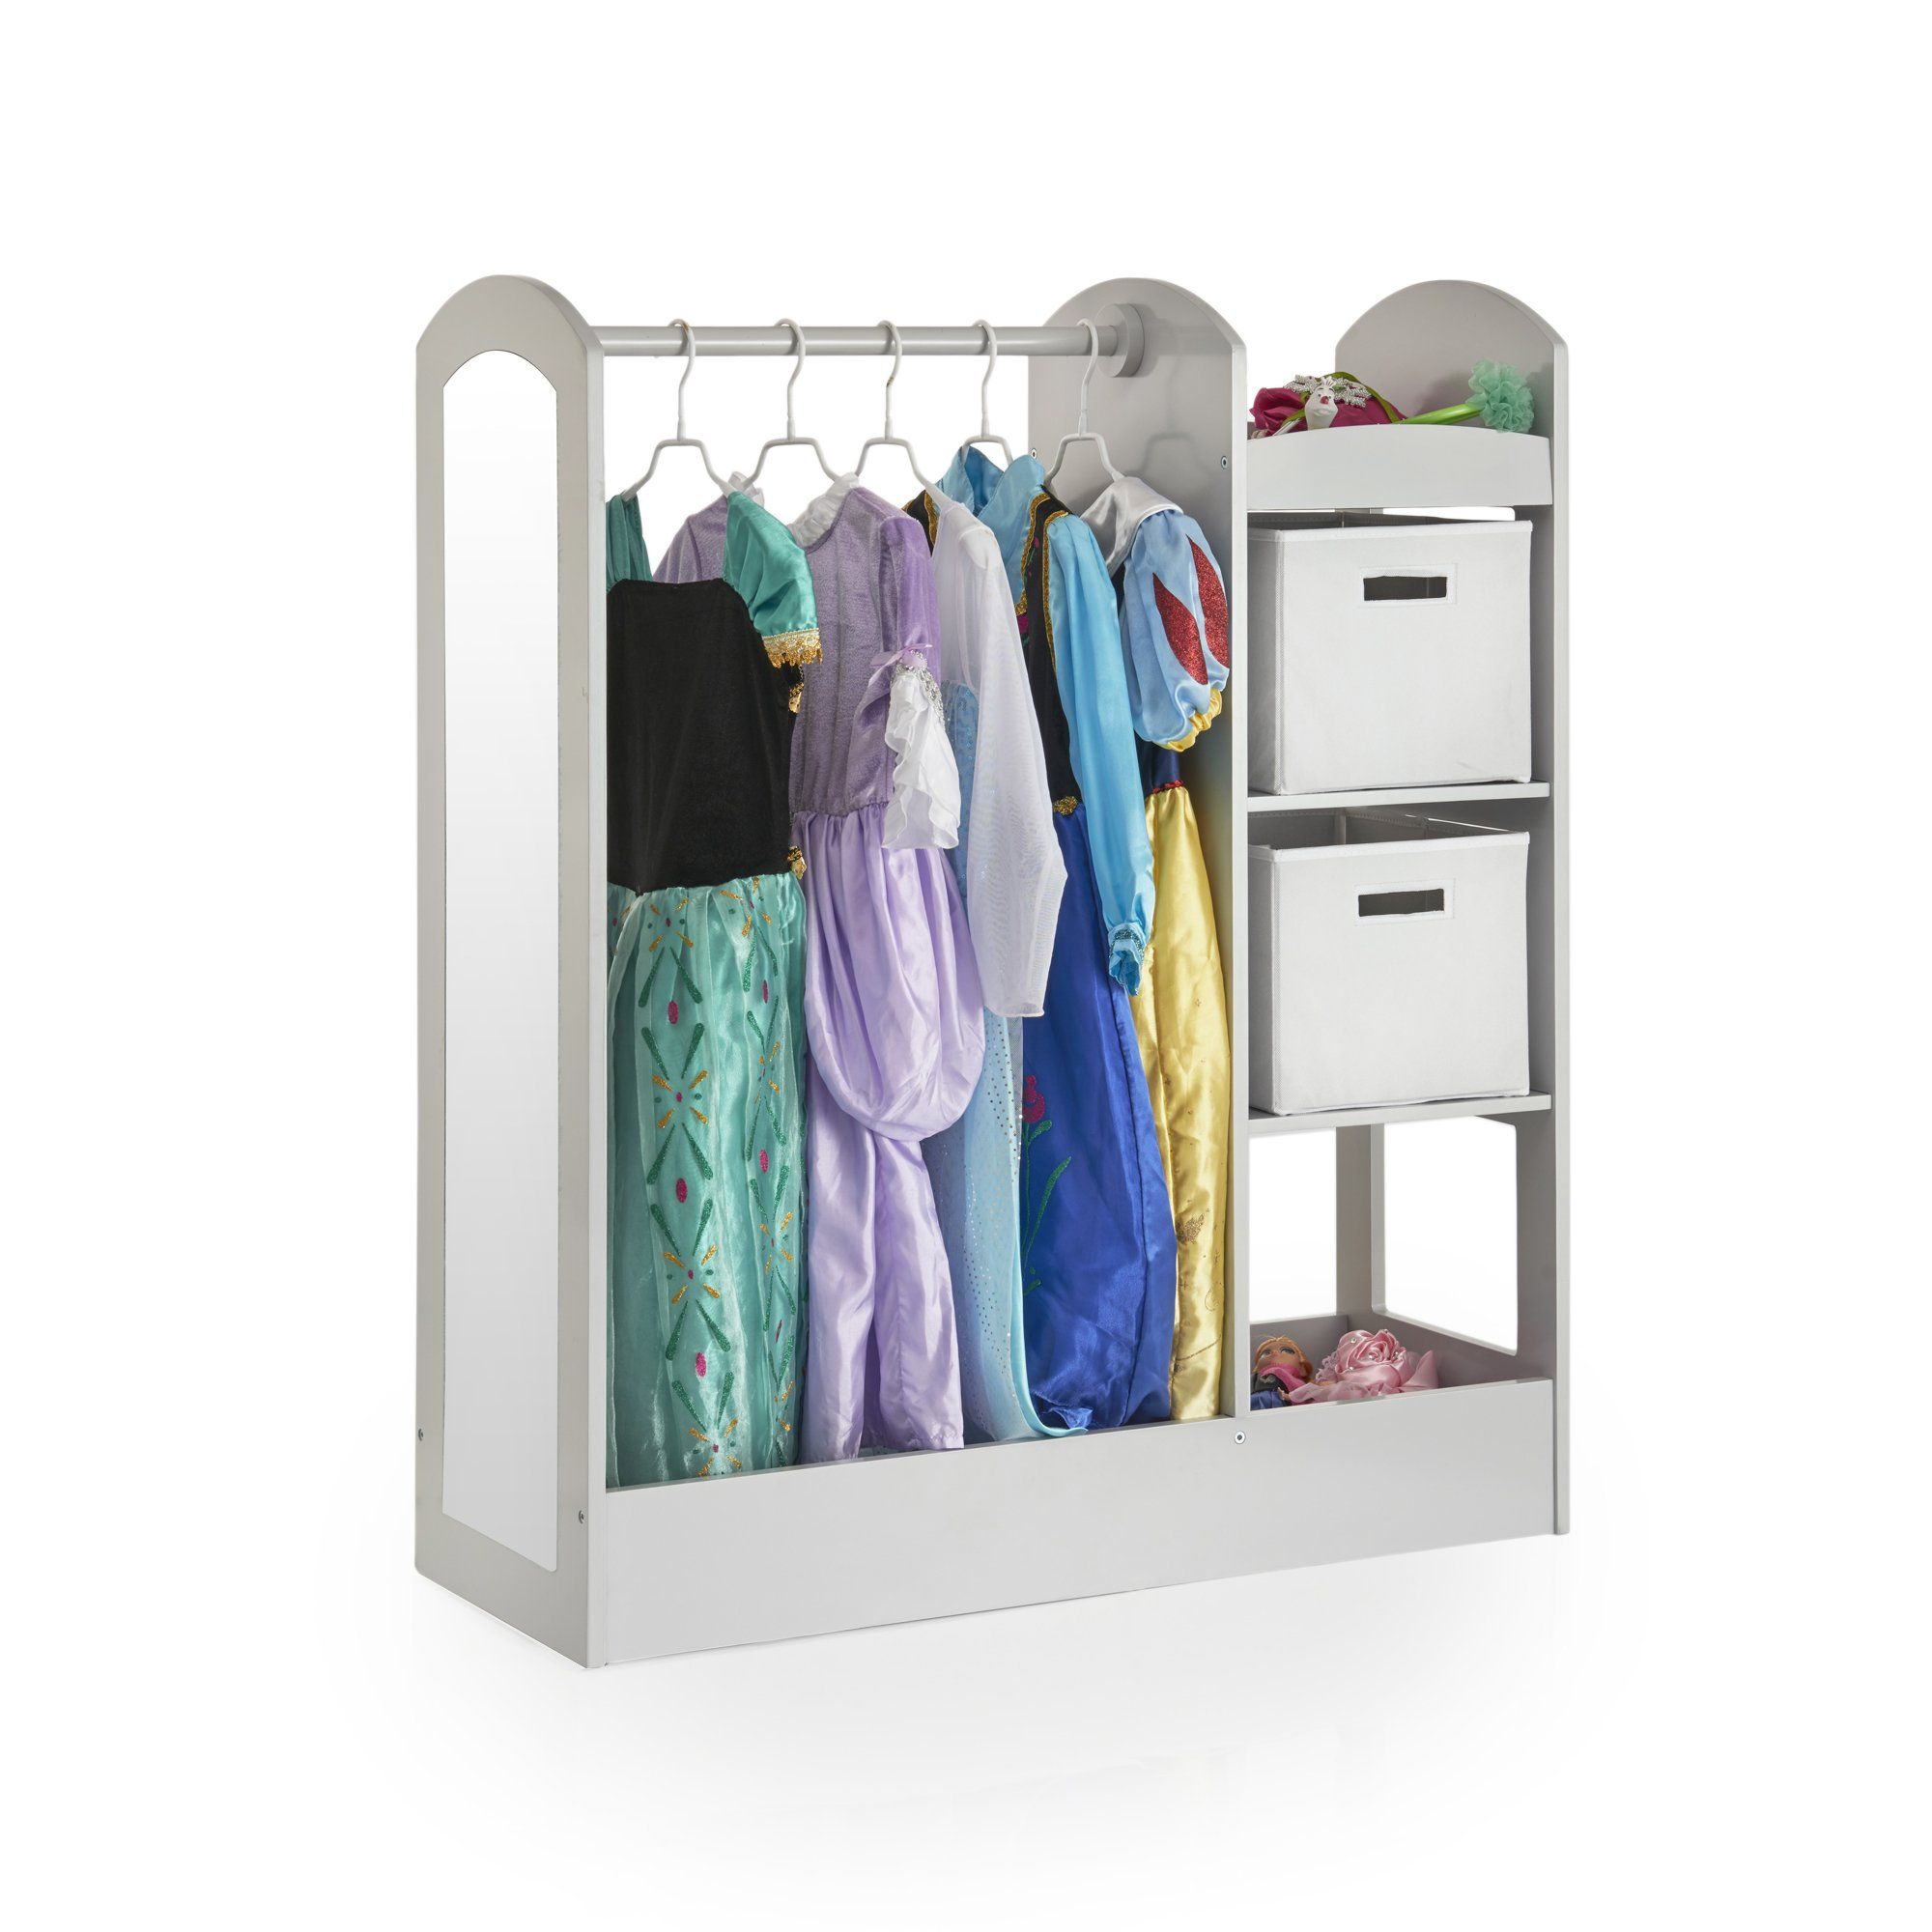 Guidecraft See and Store Dress Up Center Grey - Armoire, Dresser Kids' Furniture